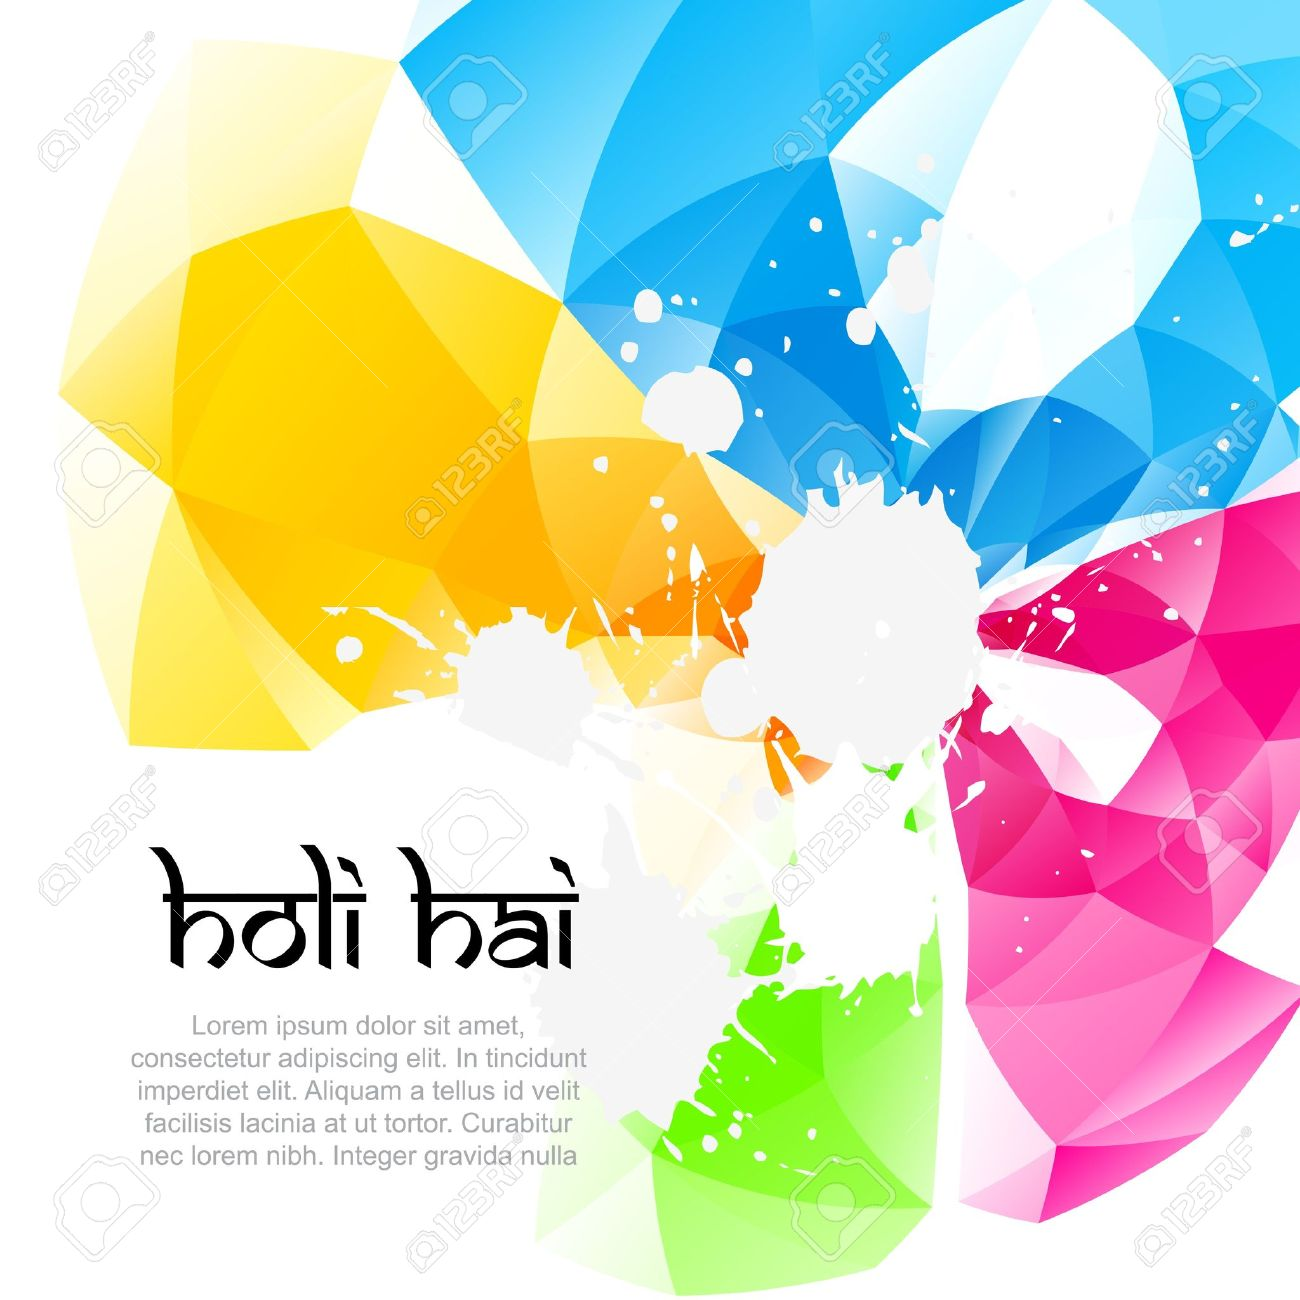 Holi Festival Background Design Royalty Free Cliparts Vectors And